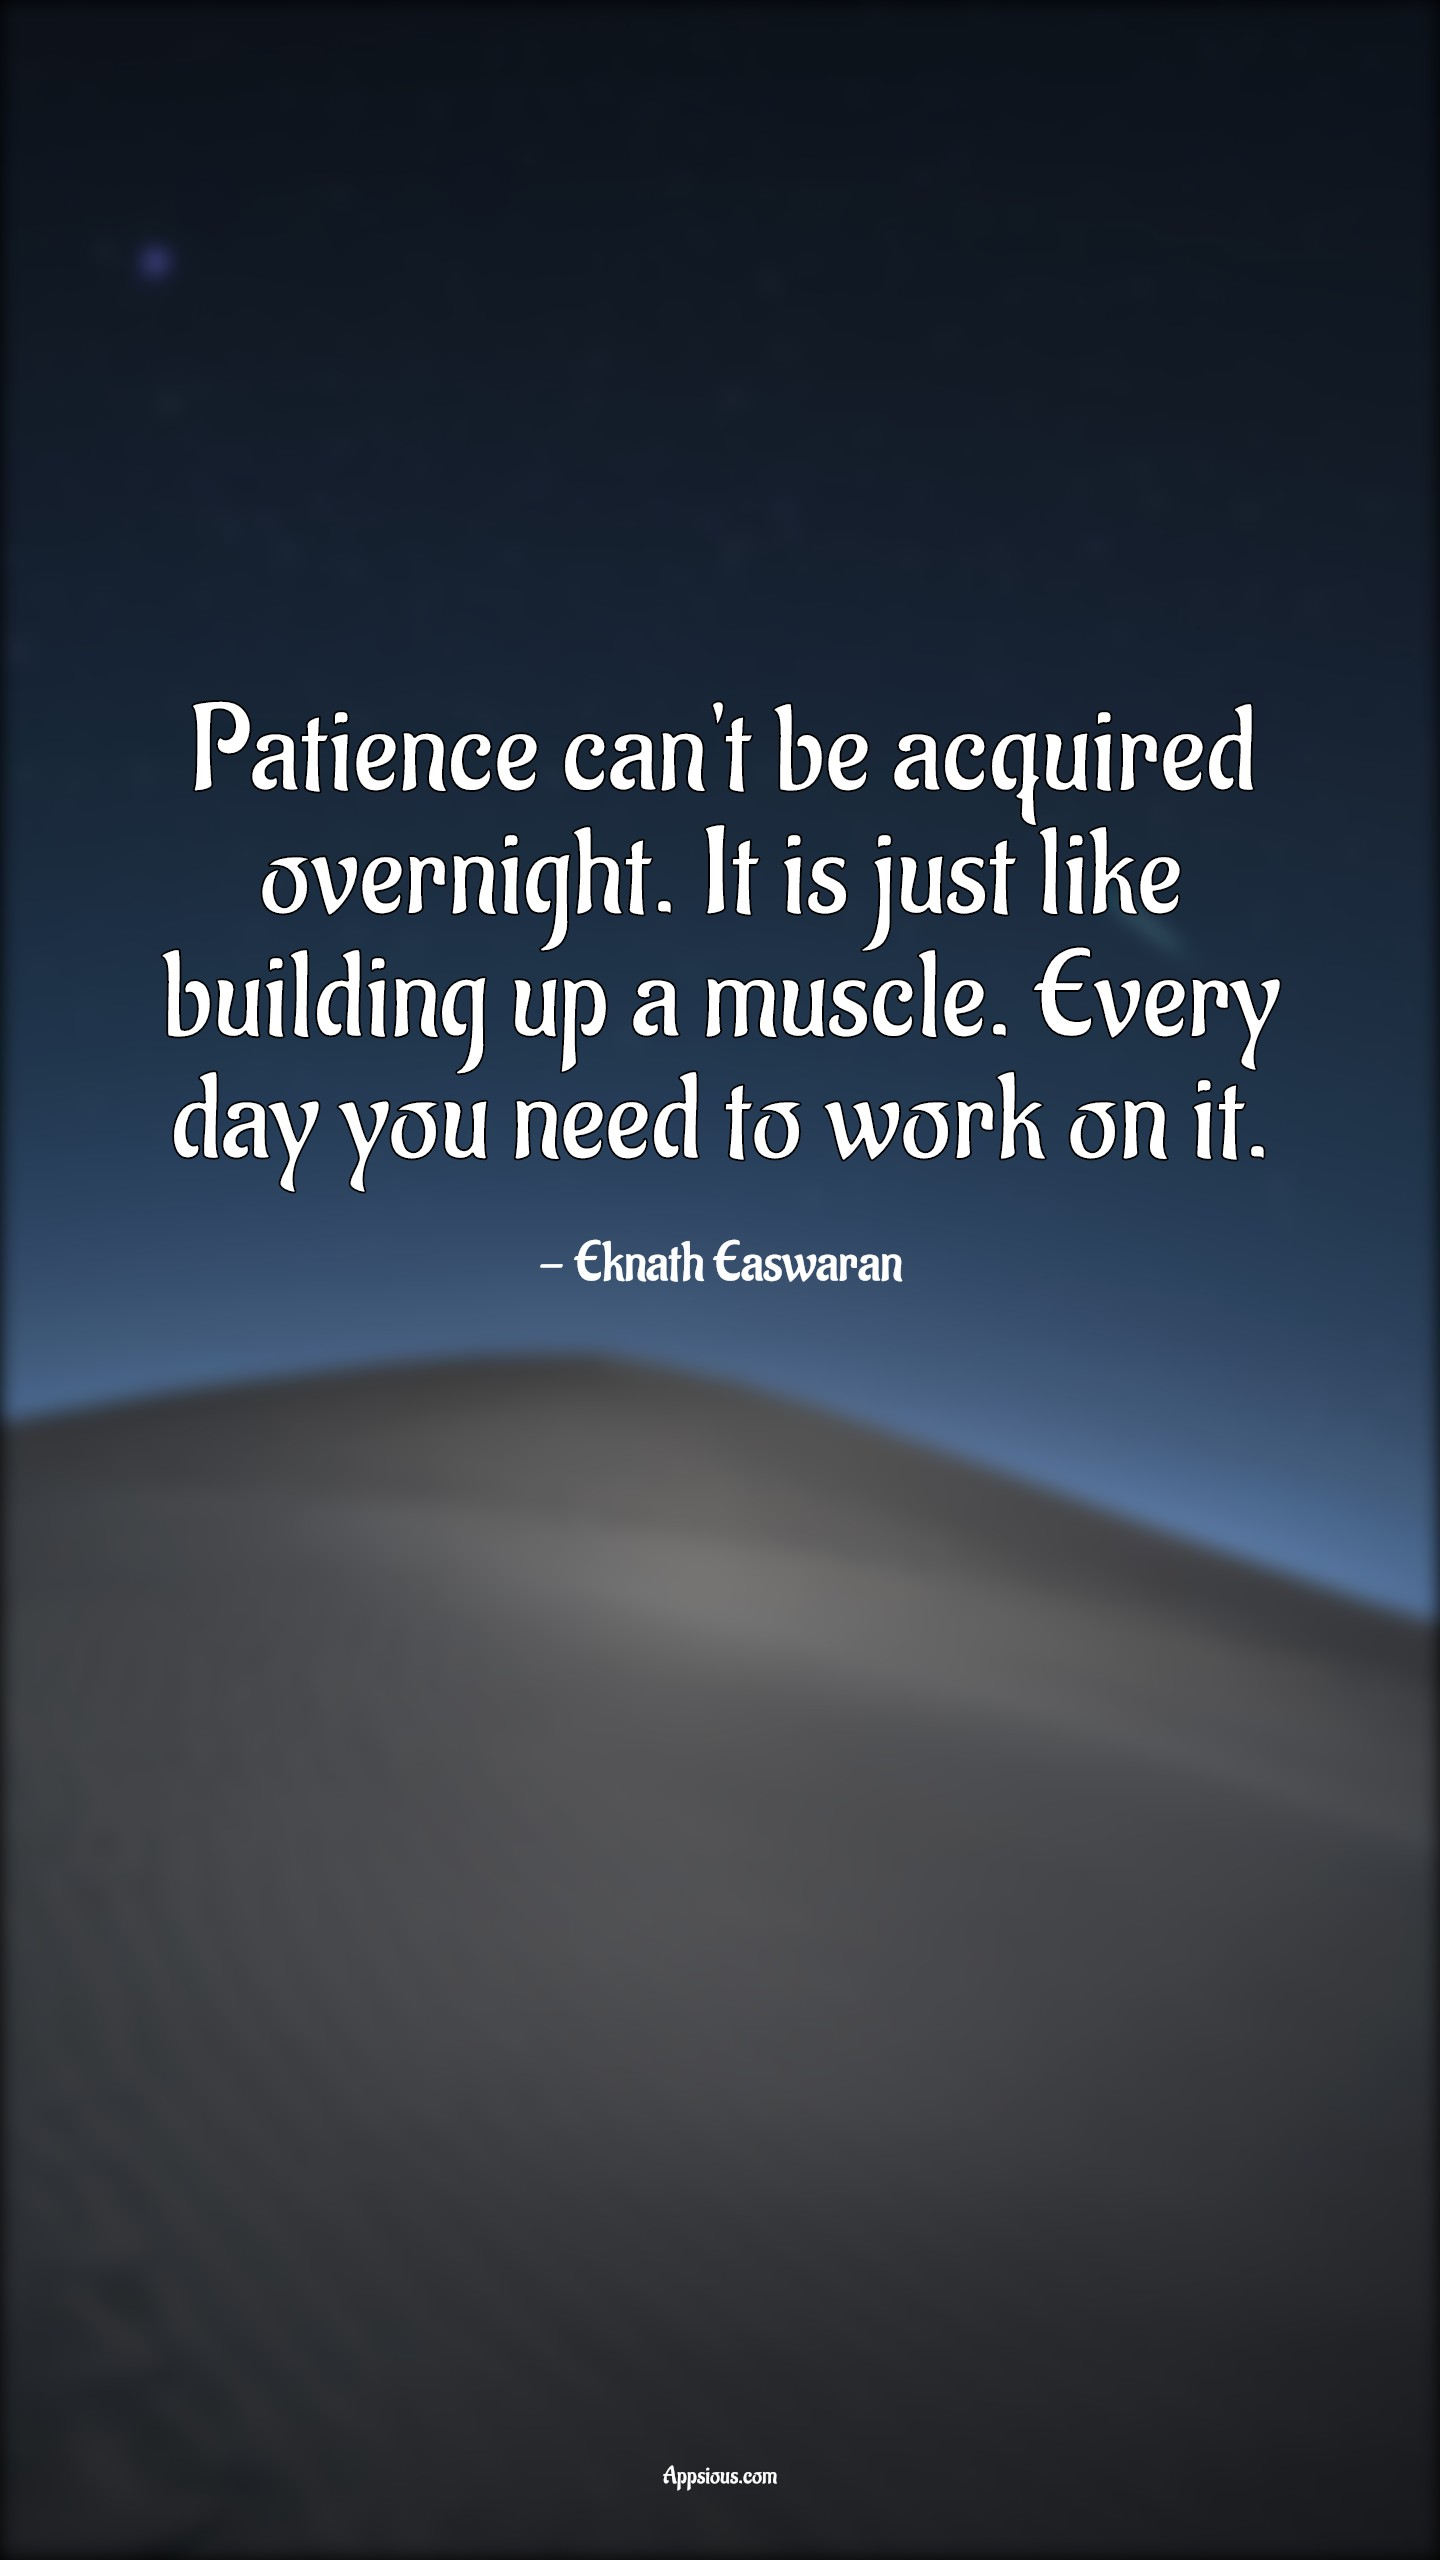 Patience can't be acquired overnight. It is just like building up a muscle. Every day you need to work on it.